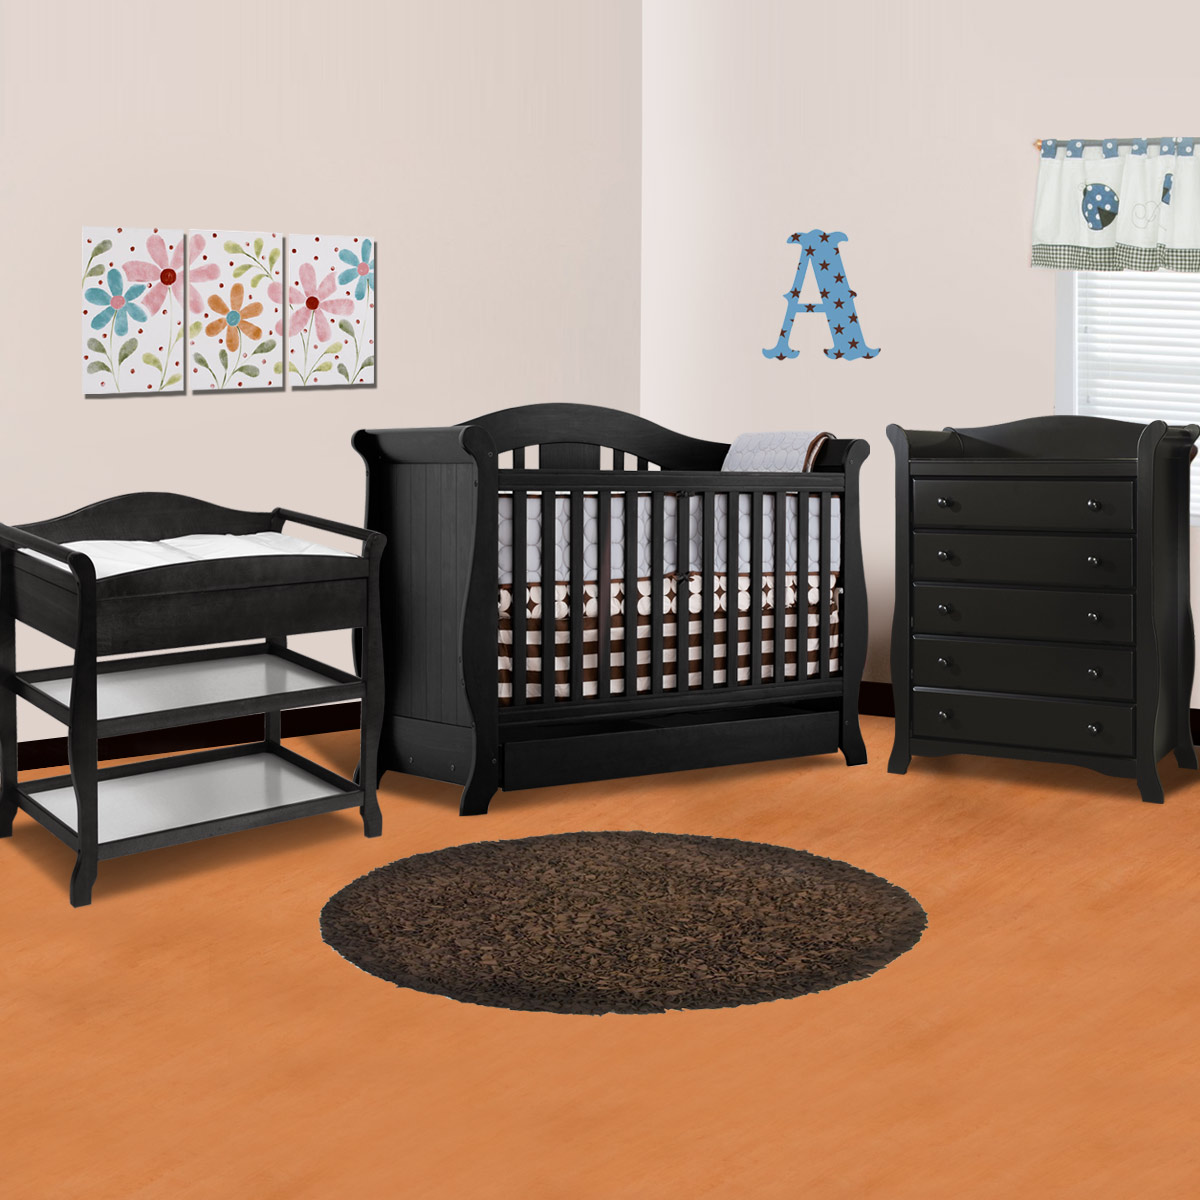 Storkcraft 3 Piece Nursery Set Vittoria Convertible Crib Aspen Changing Table And Avalon 5 Drawer Dresser In Cherry Free